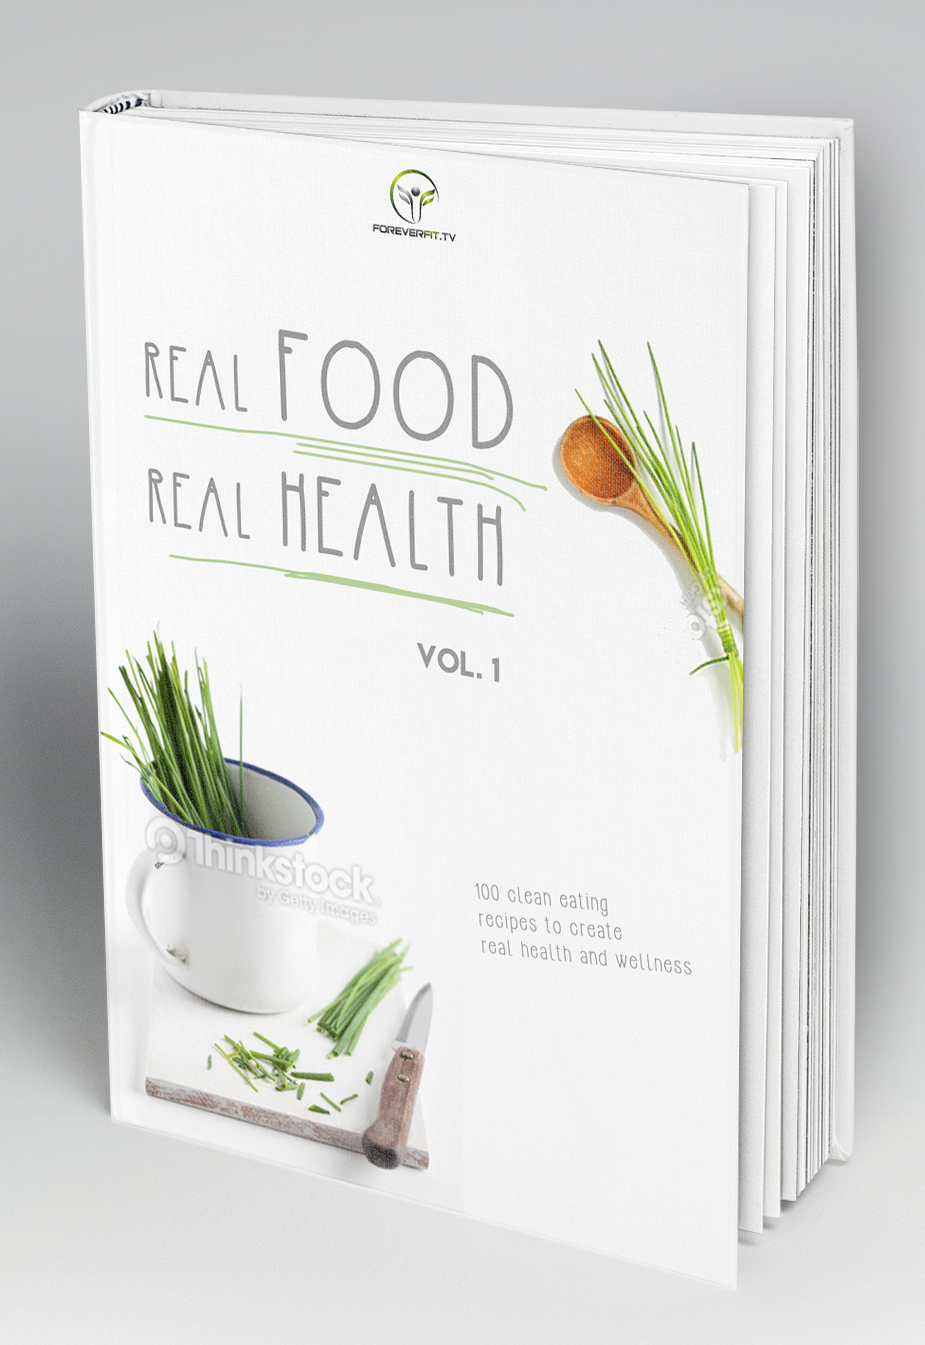 Real Food Real Health Cover By Ioana Aka Fii Design. - Recipe Book Cover PNG